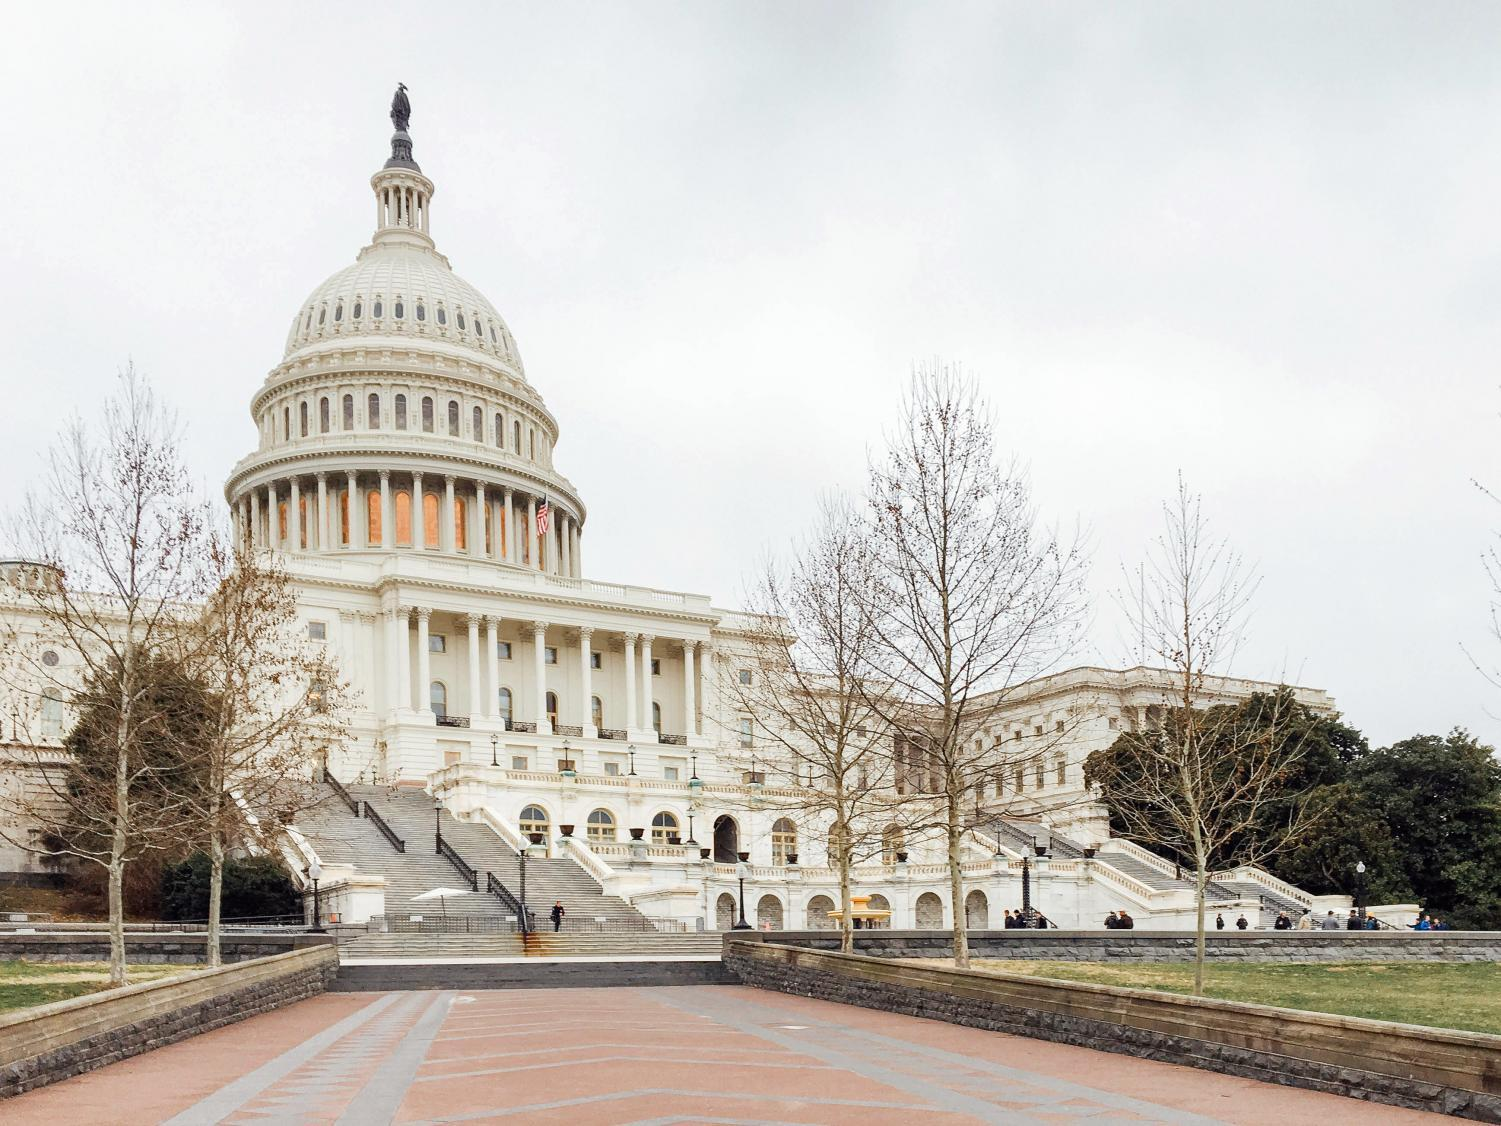 The West Front of the U.S. Capitol during a Friday recess.